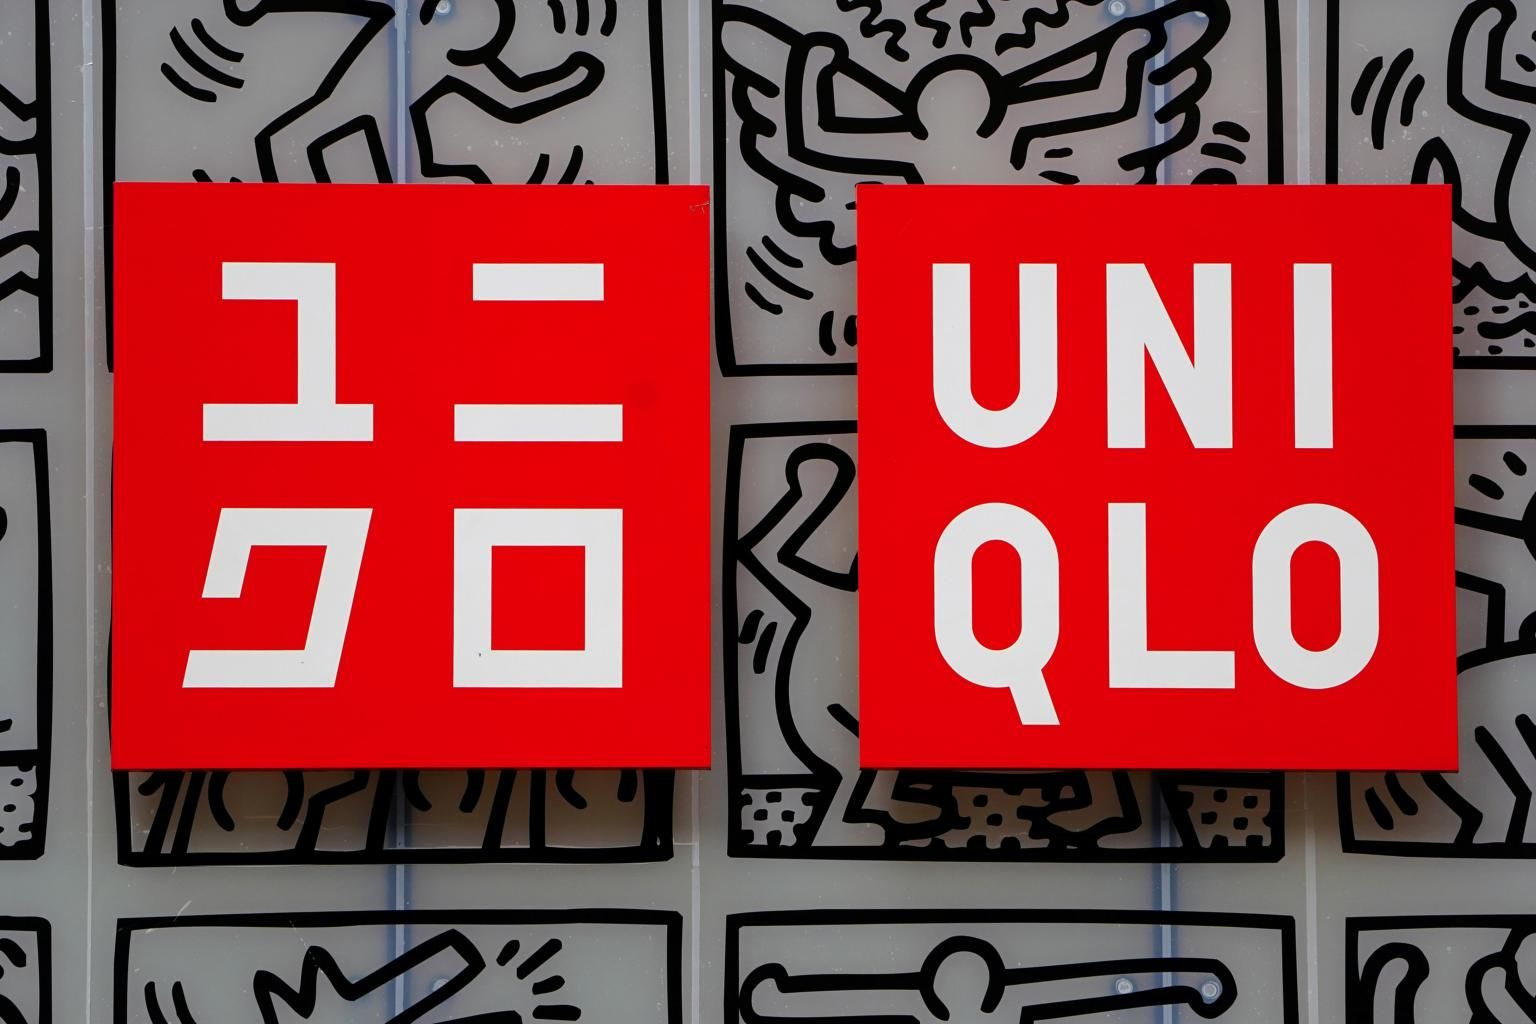 nz_uniqlo_101055.jpg